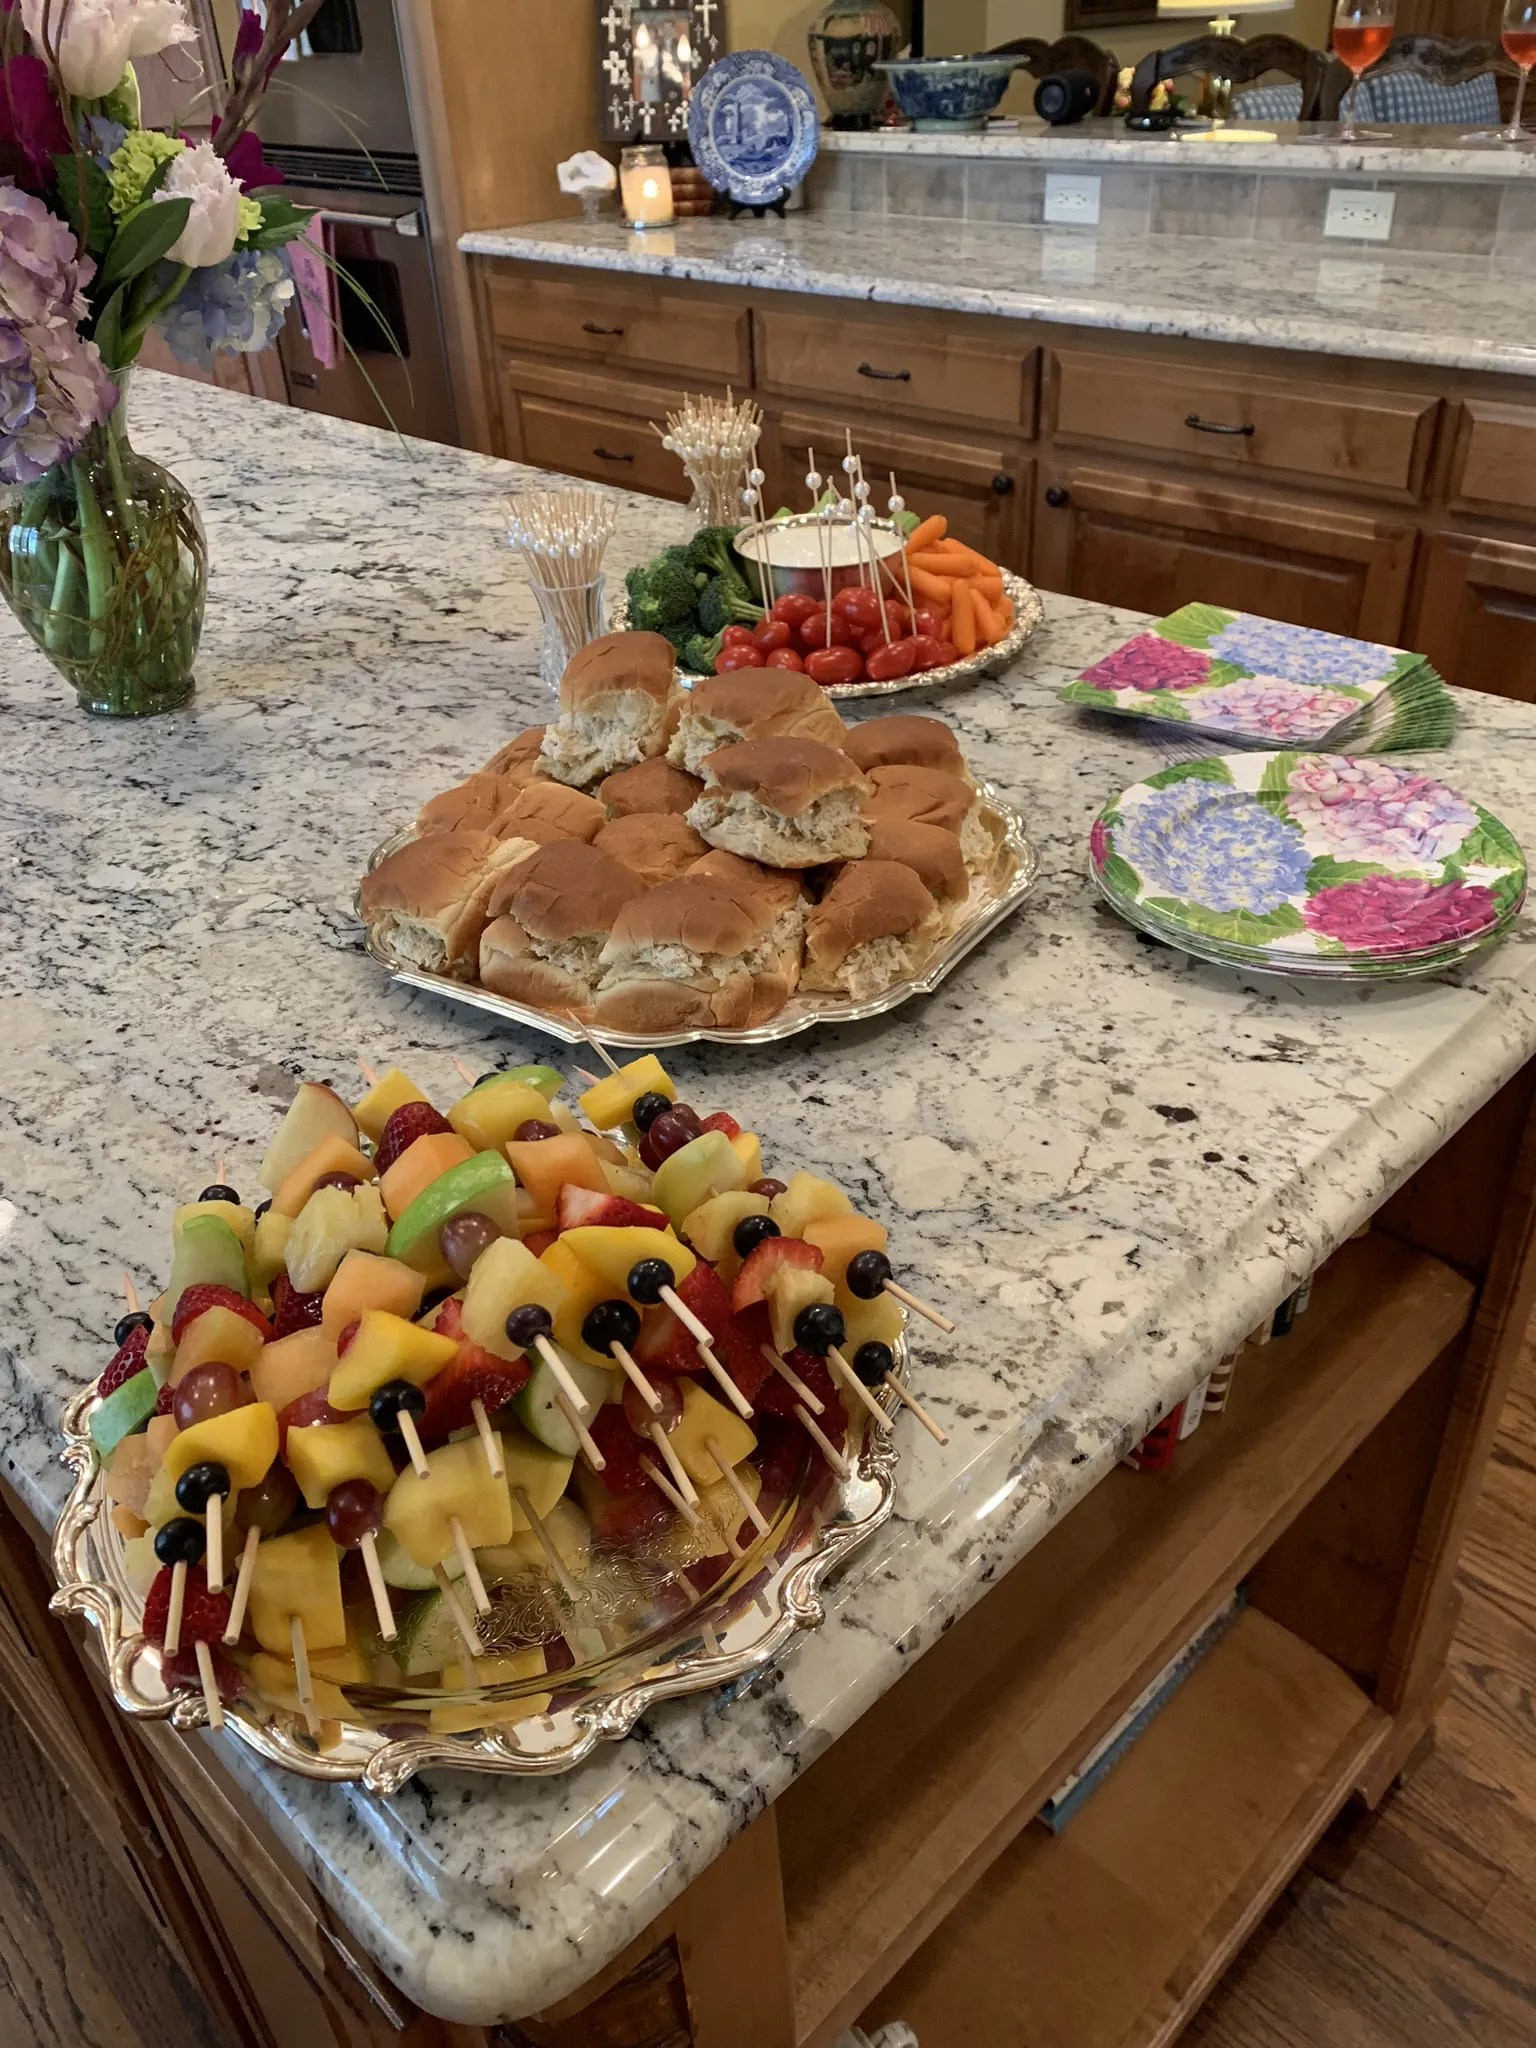 fruit kebobs and other food